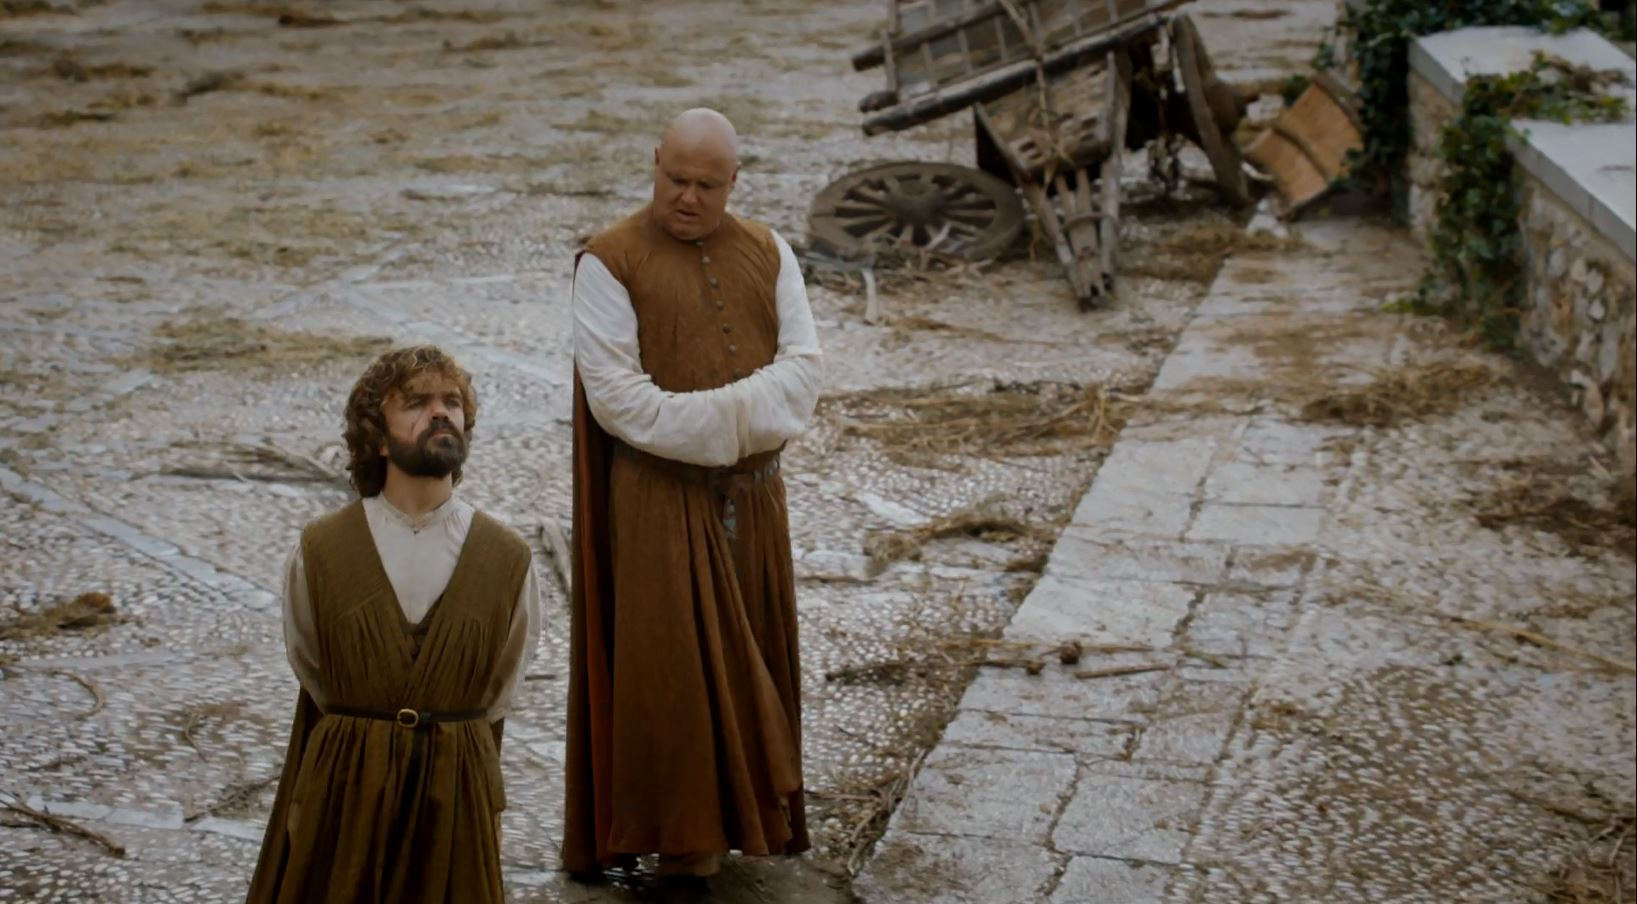 Varys and Tyrion walking through Meereen. Game Of Thrones S6Ep1 The Red Woman Review